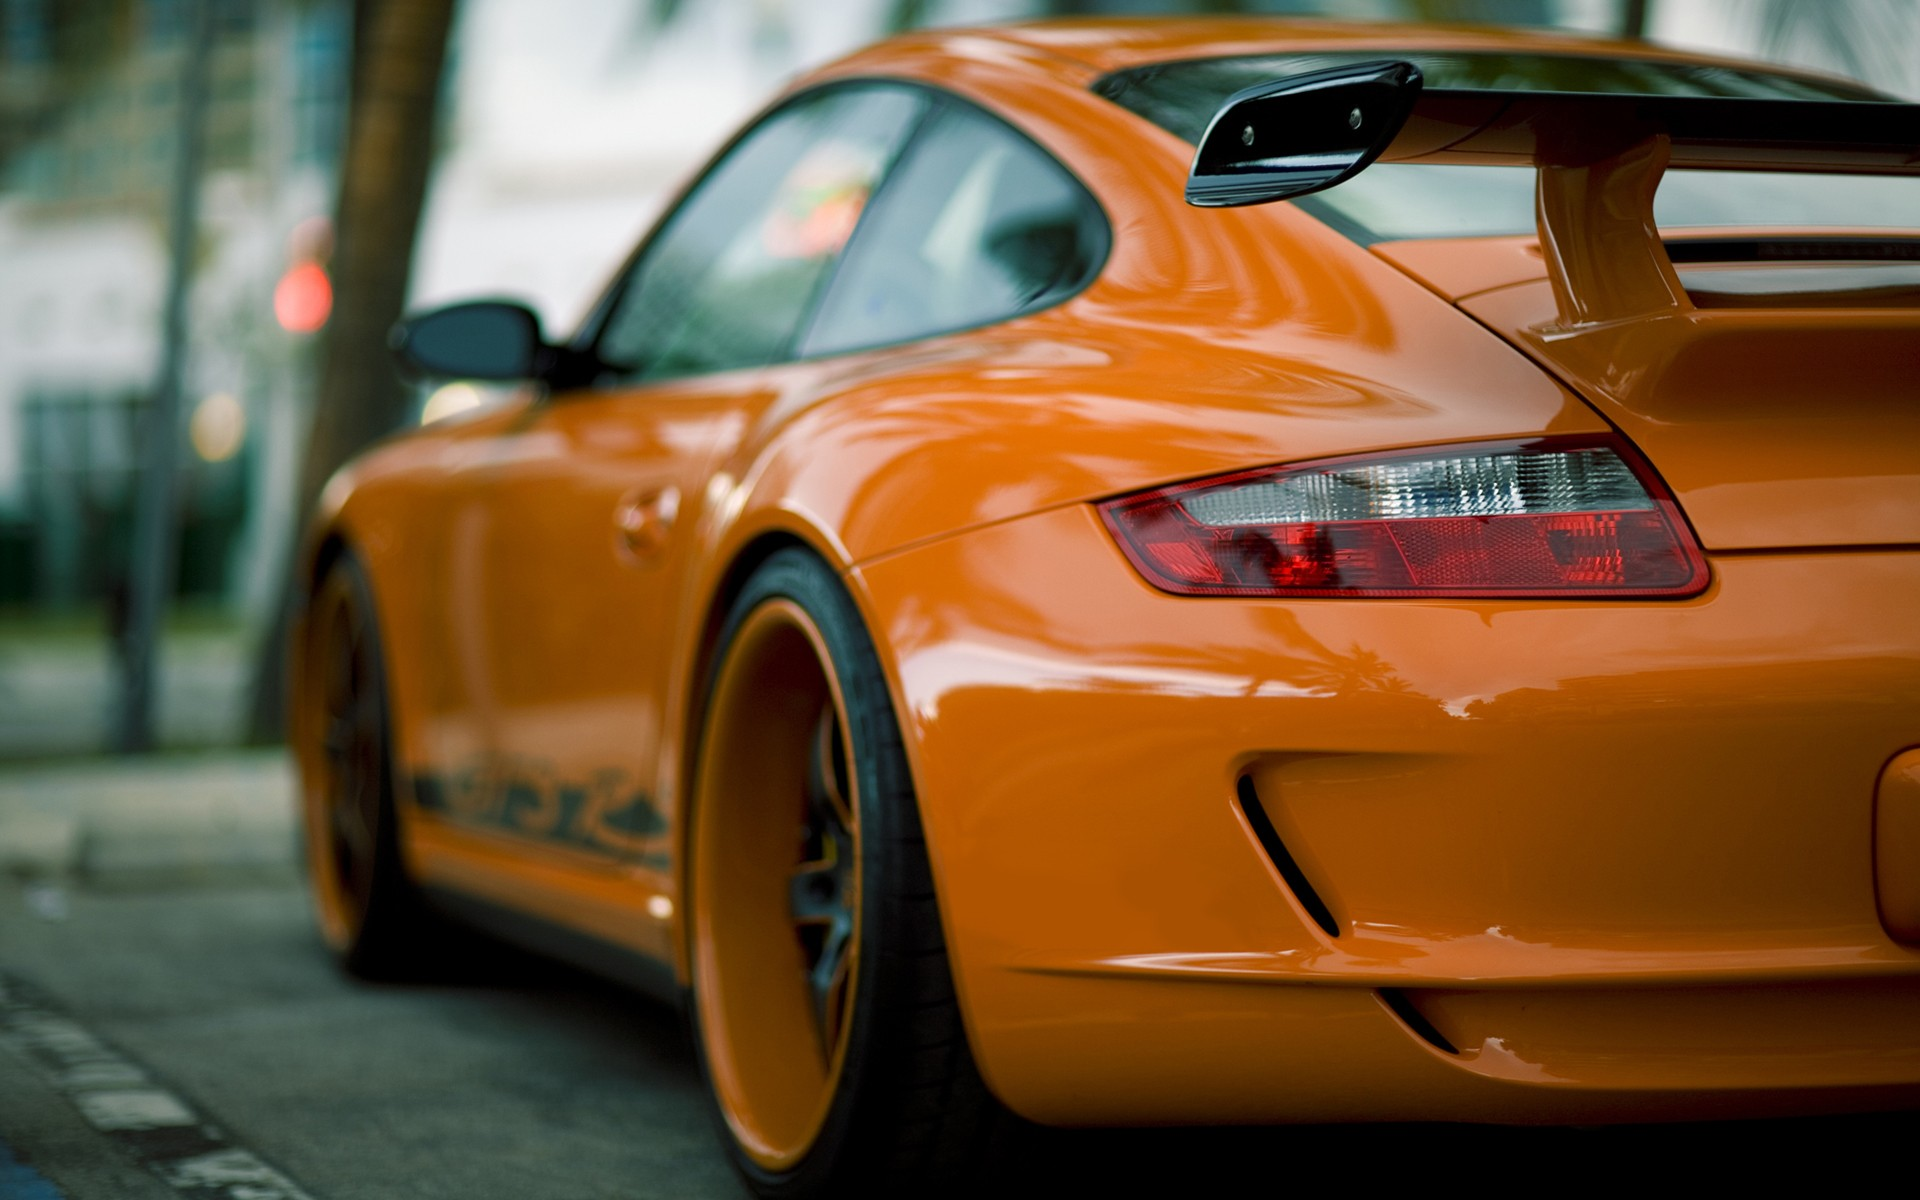 porsche gt3 wallpaper hd 36440 1920x1200 px ~ hdwallsource